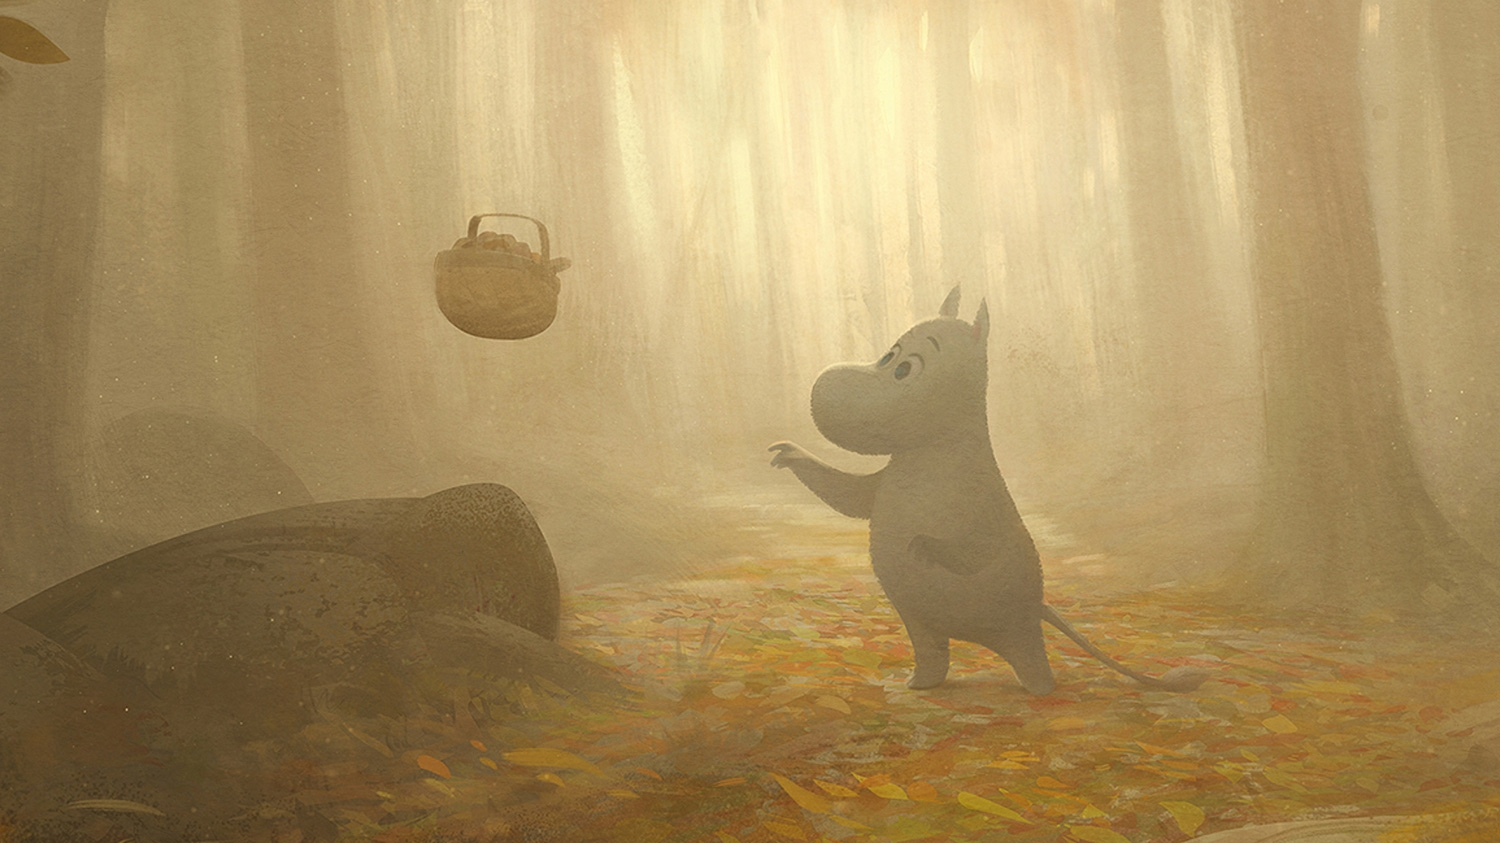 See the beautiful concept art for the new Moomin animated TV series, Moominvalley